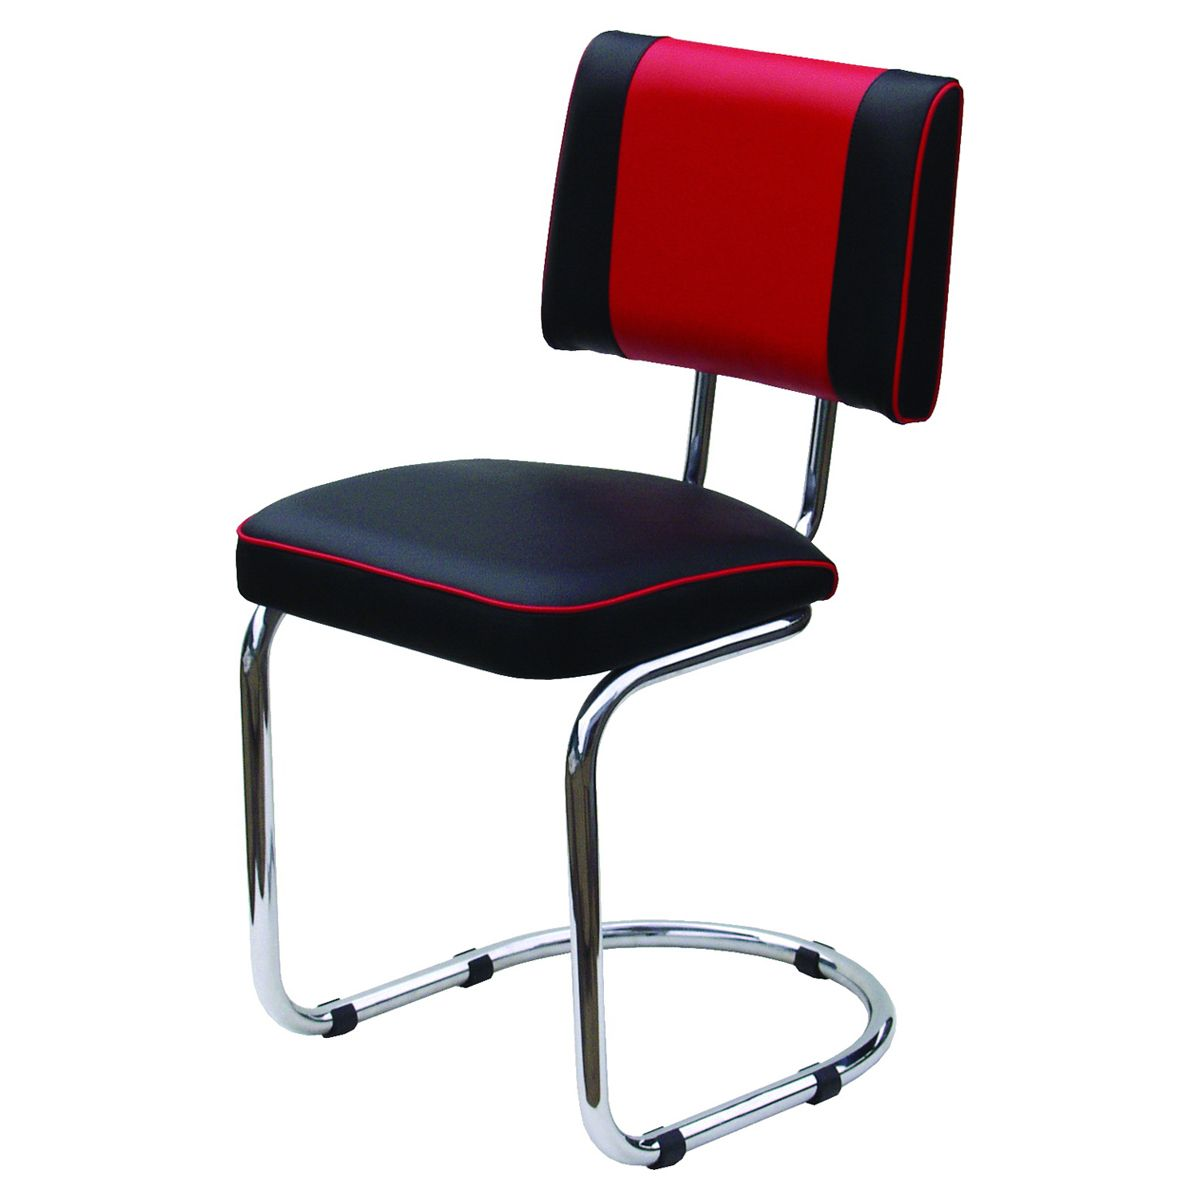 Food Chair Fast Food Chair American Diner Chair Chrome Furniture